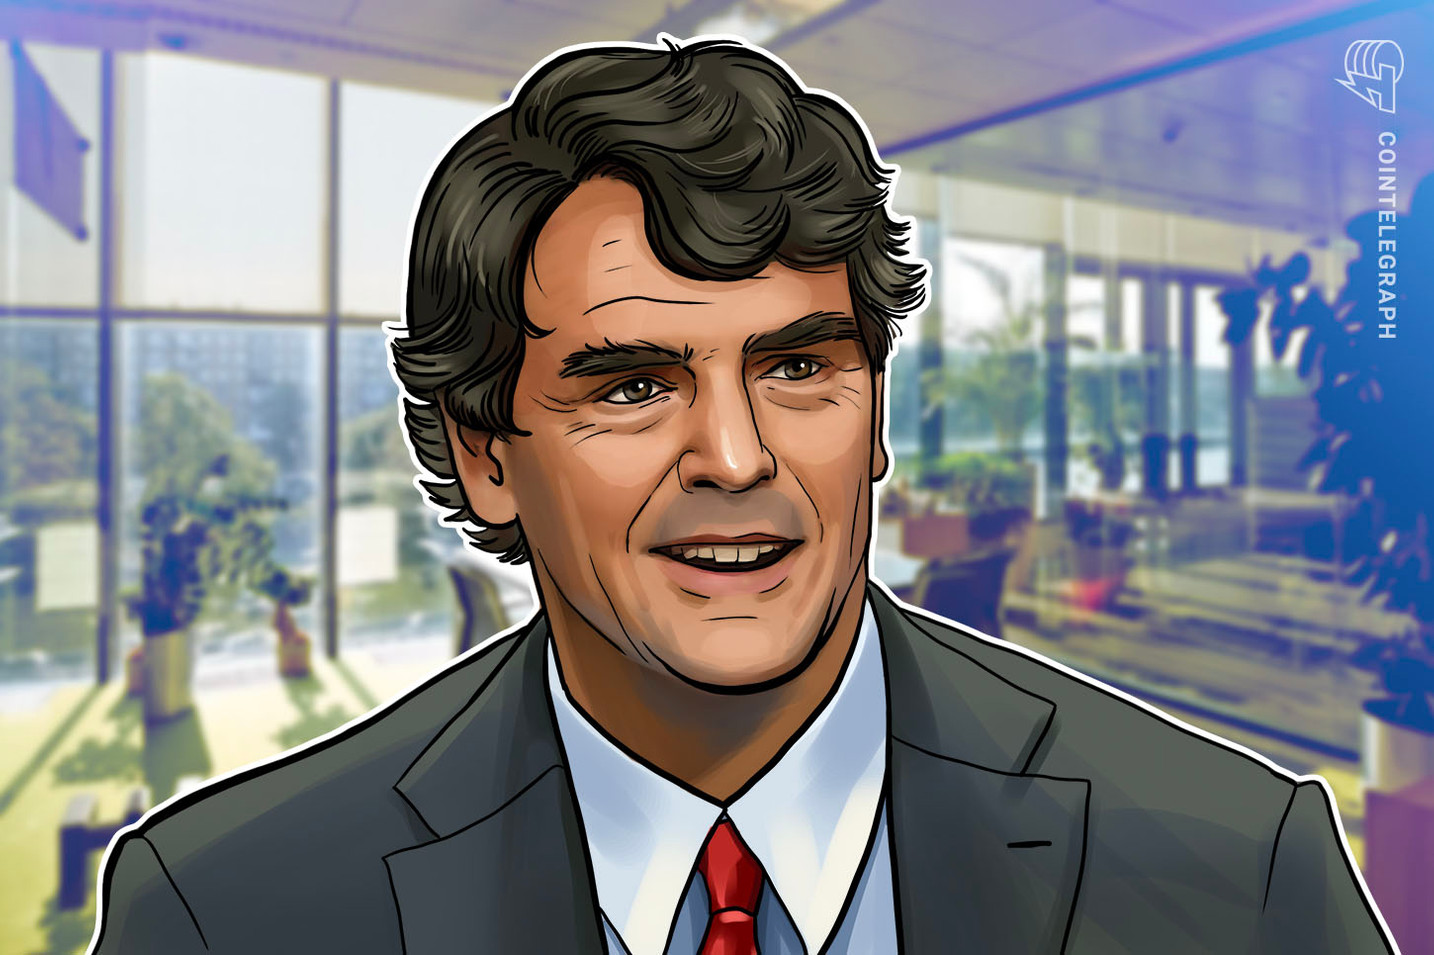 BTC billionaire Tim Draper to Elon Musk: I'd buy the Tesla Cybertruck with Bitcoin